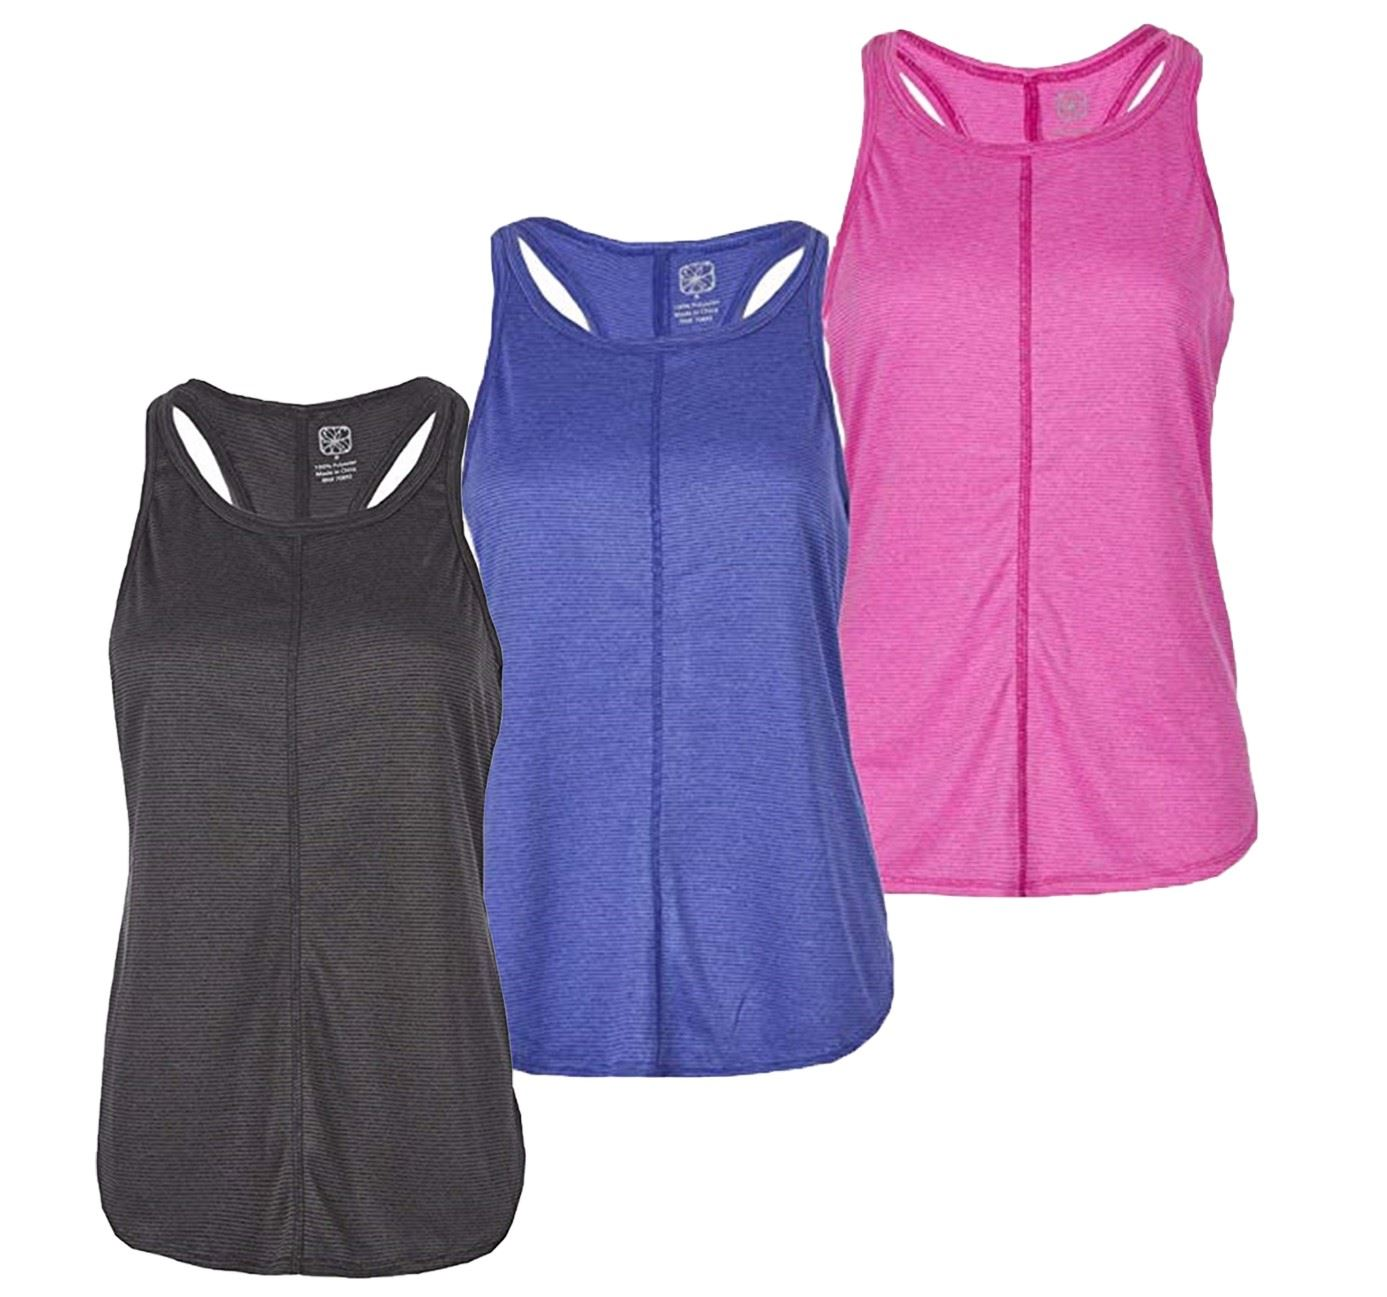 Ladies-Womens-Red-Tag-Active-Racer-Back-Yoga-Gym-Exercise-Vest-Tank-Top thumbnail 19